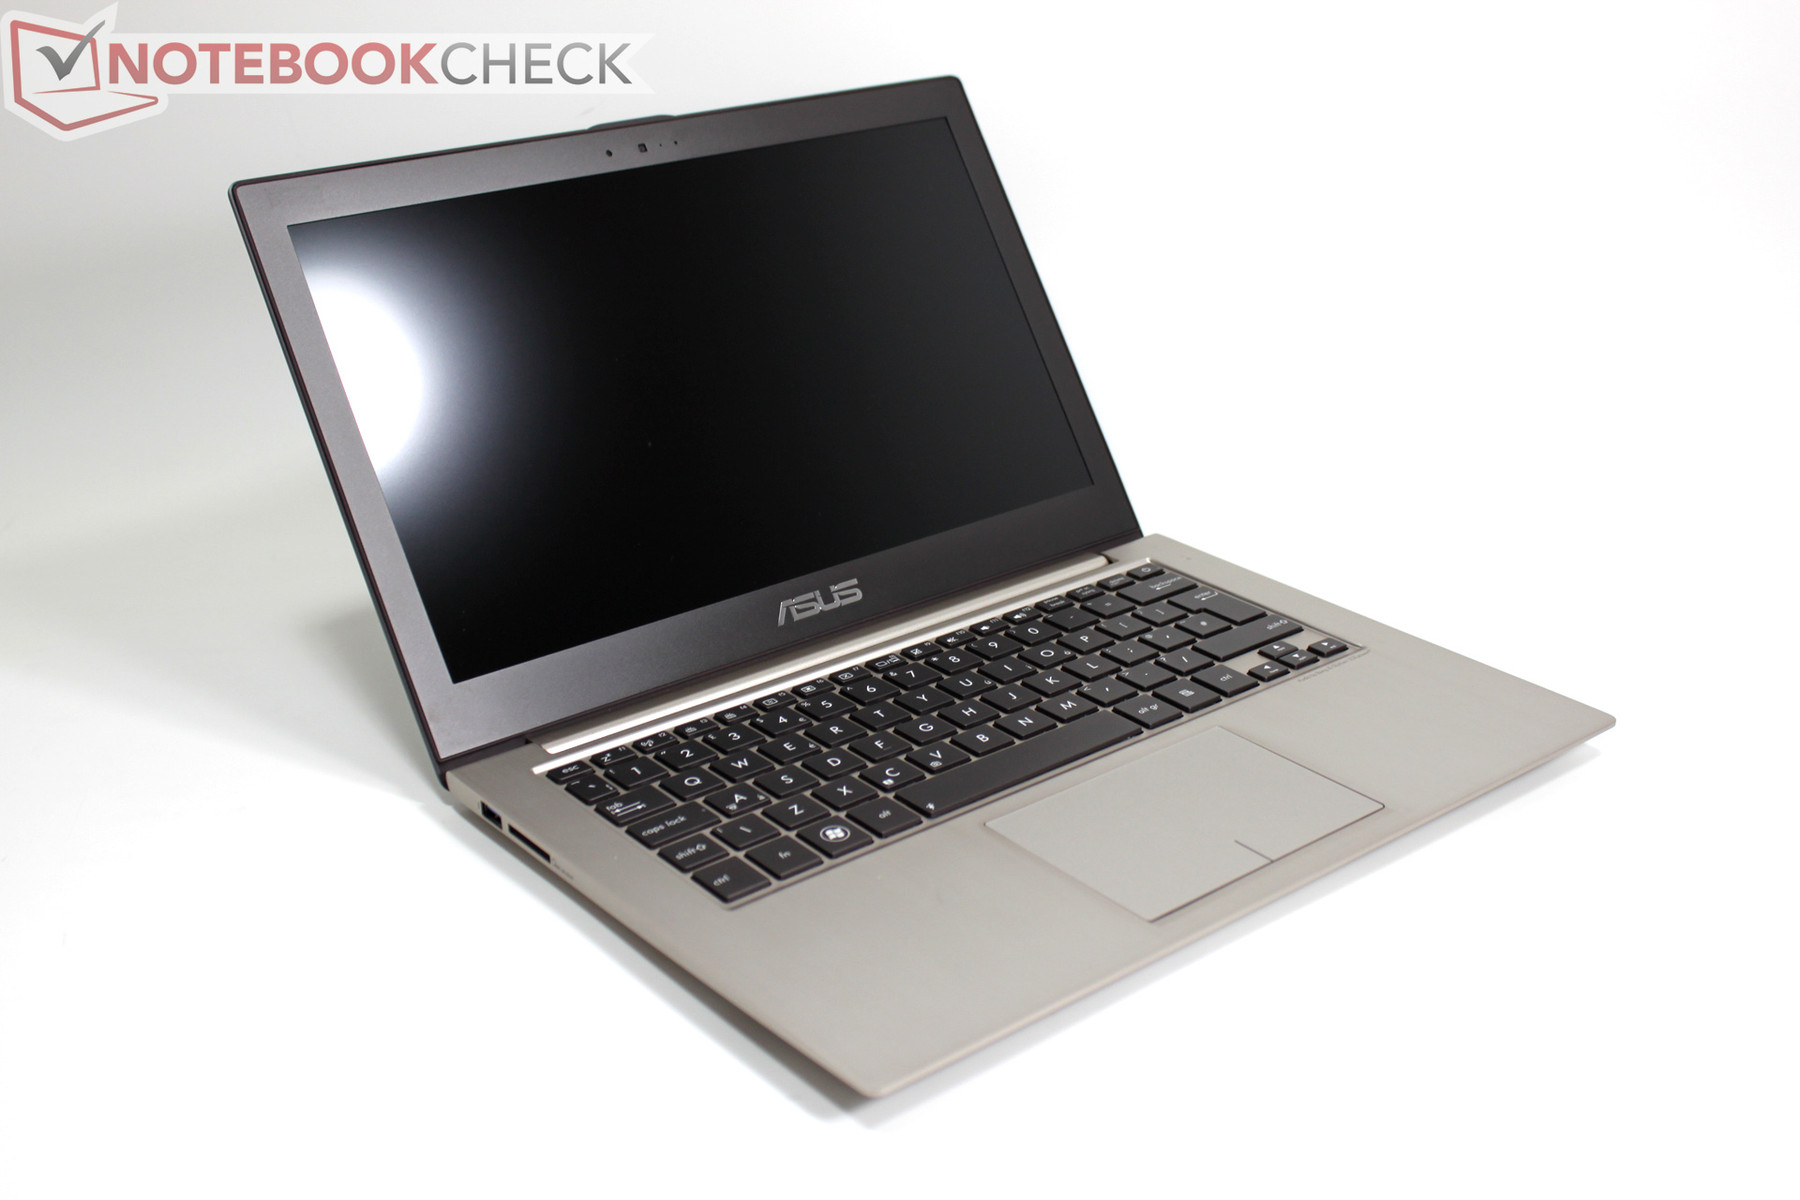 ASUS ZENBOOK UX32VD NVIDIA PHYSX WINDOWS XP DRIVER